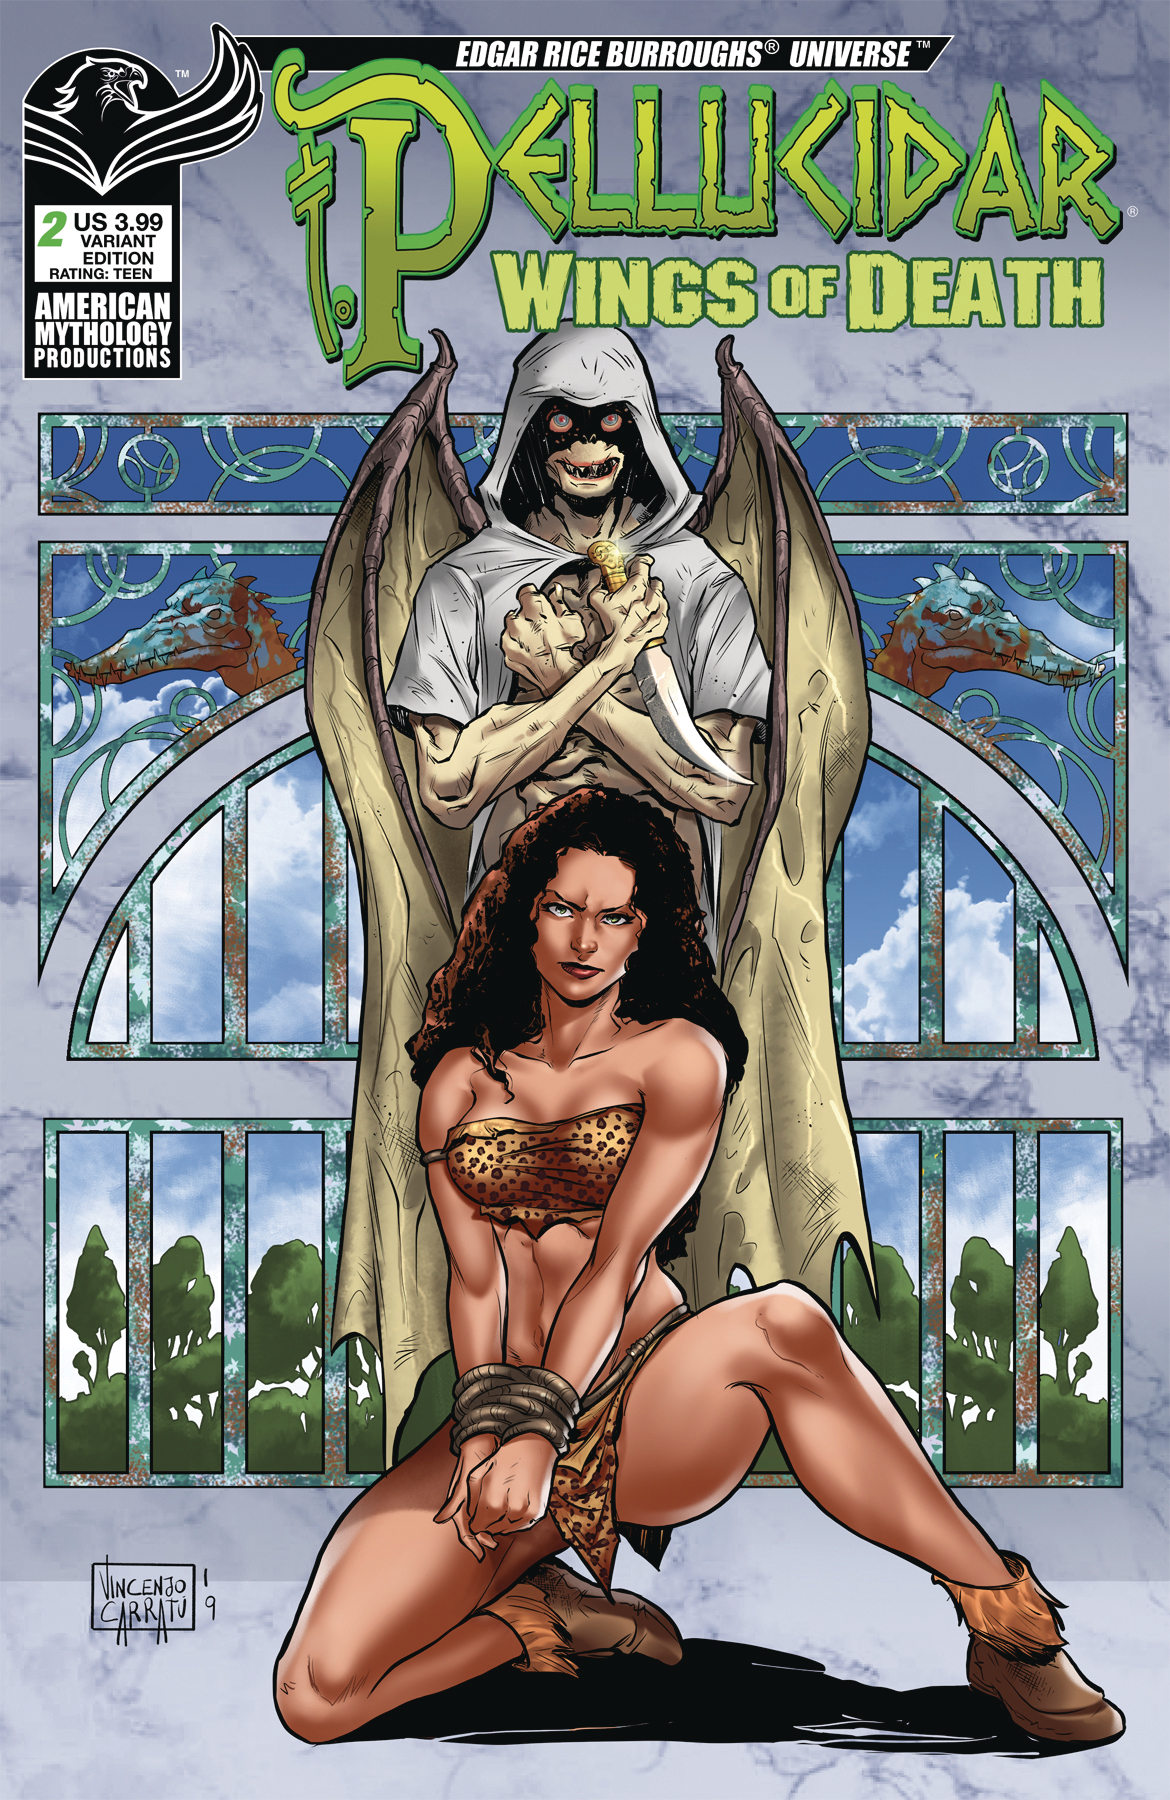 PELLUCIDAR WINGS OF DEATH #2 CVR B CARRATU